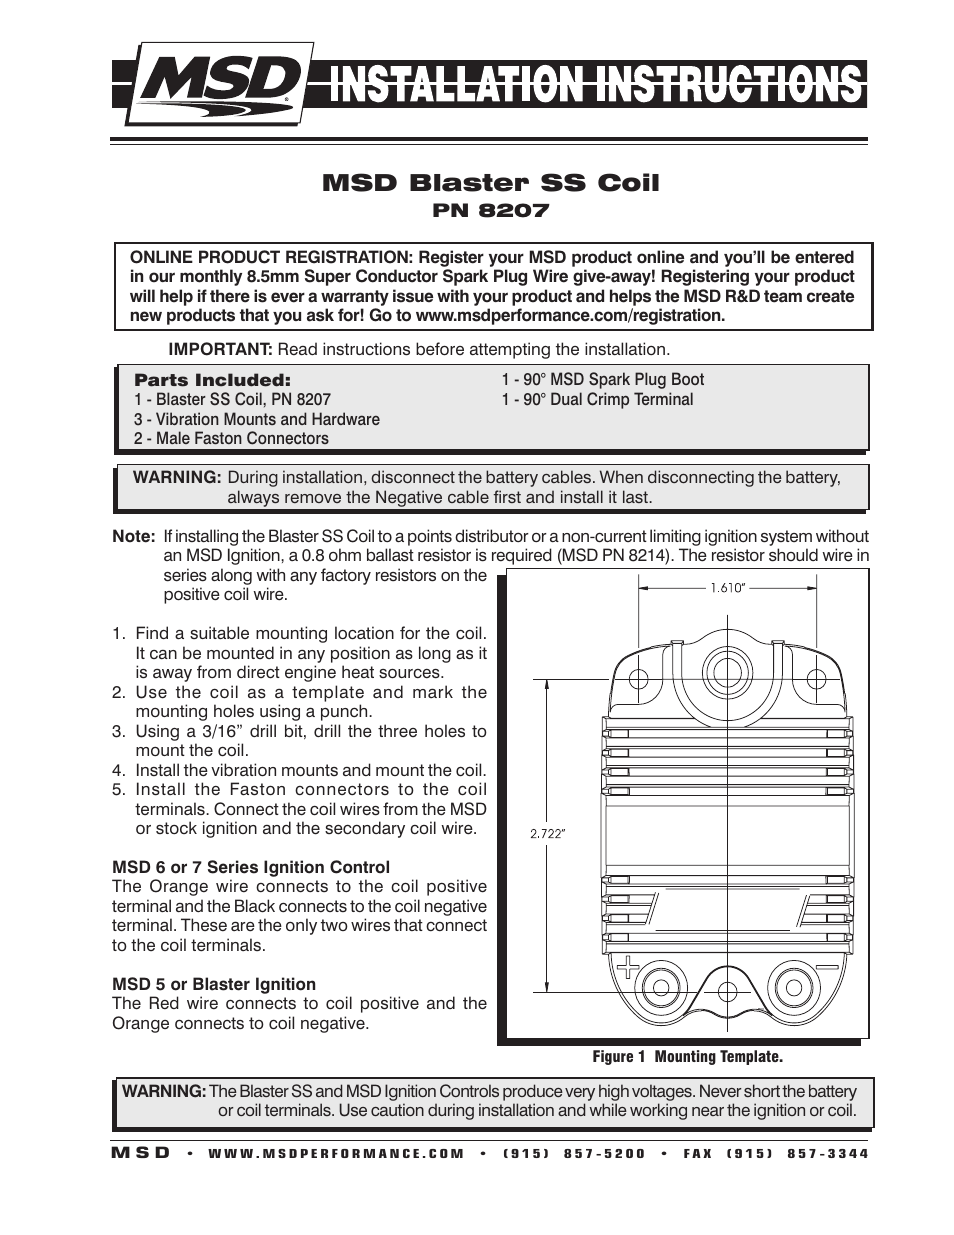 msd 8207 blaster ss coil installation page1?resize\\\\=665%2C861 diagrams 1182638 msd 6200 wiring diagram msd 6a wiring diagram msd 6a 6200 wiring diagram at virtualis.co